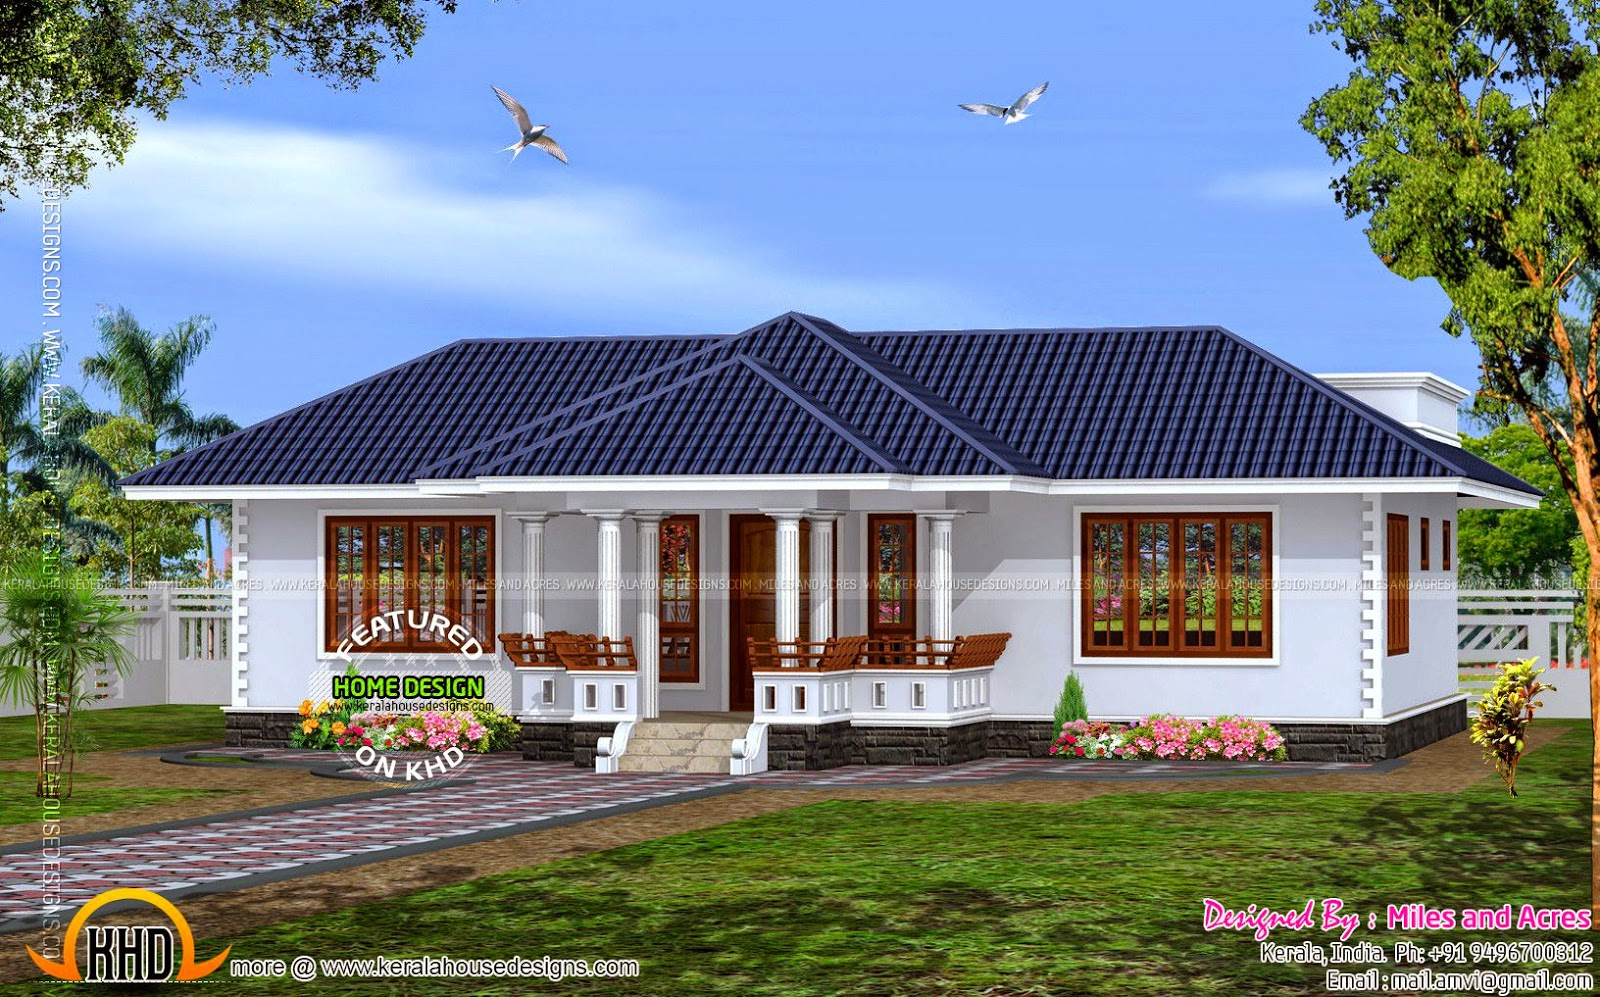 Siddu buzz online house plan of single floor house kerala home design - Housing designs ...